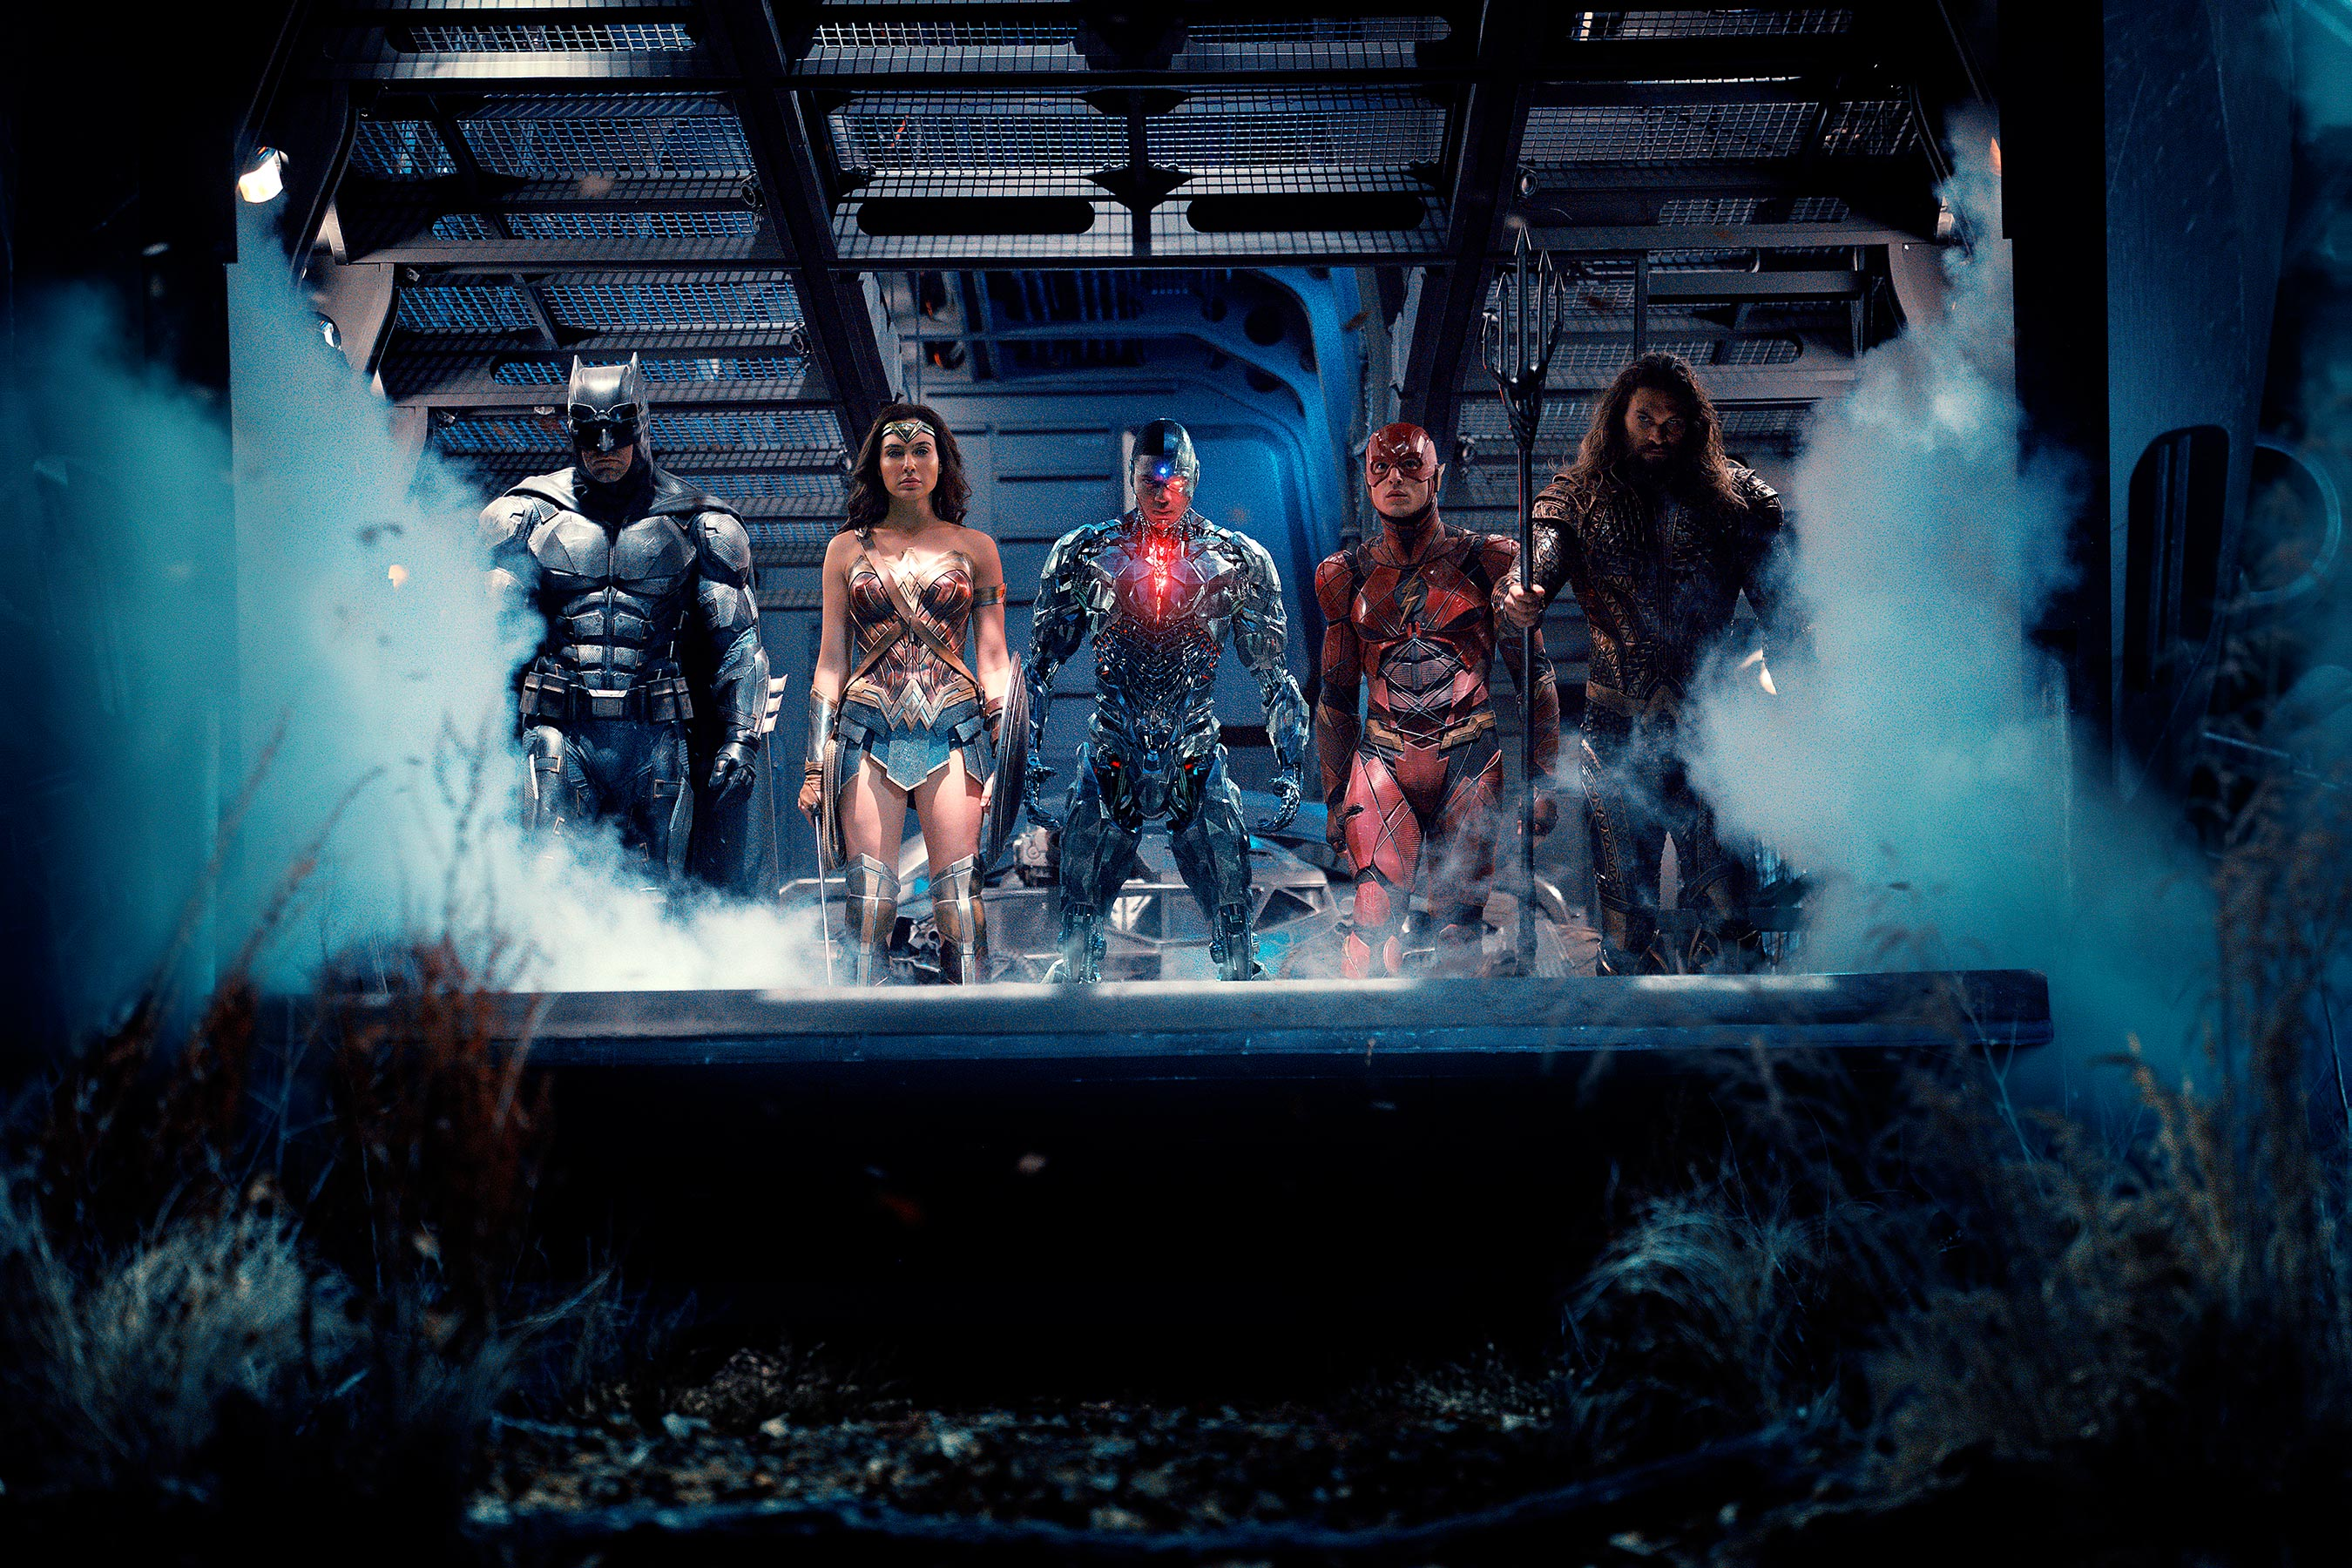 Justice League Ben Affleck Gal Gadot Ray Fisher Ezra Miller Jason Mamoa